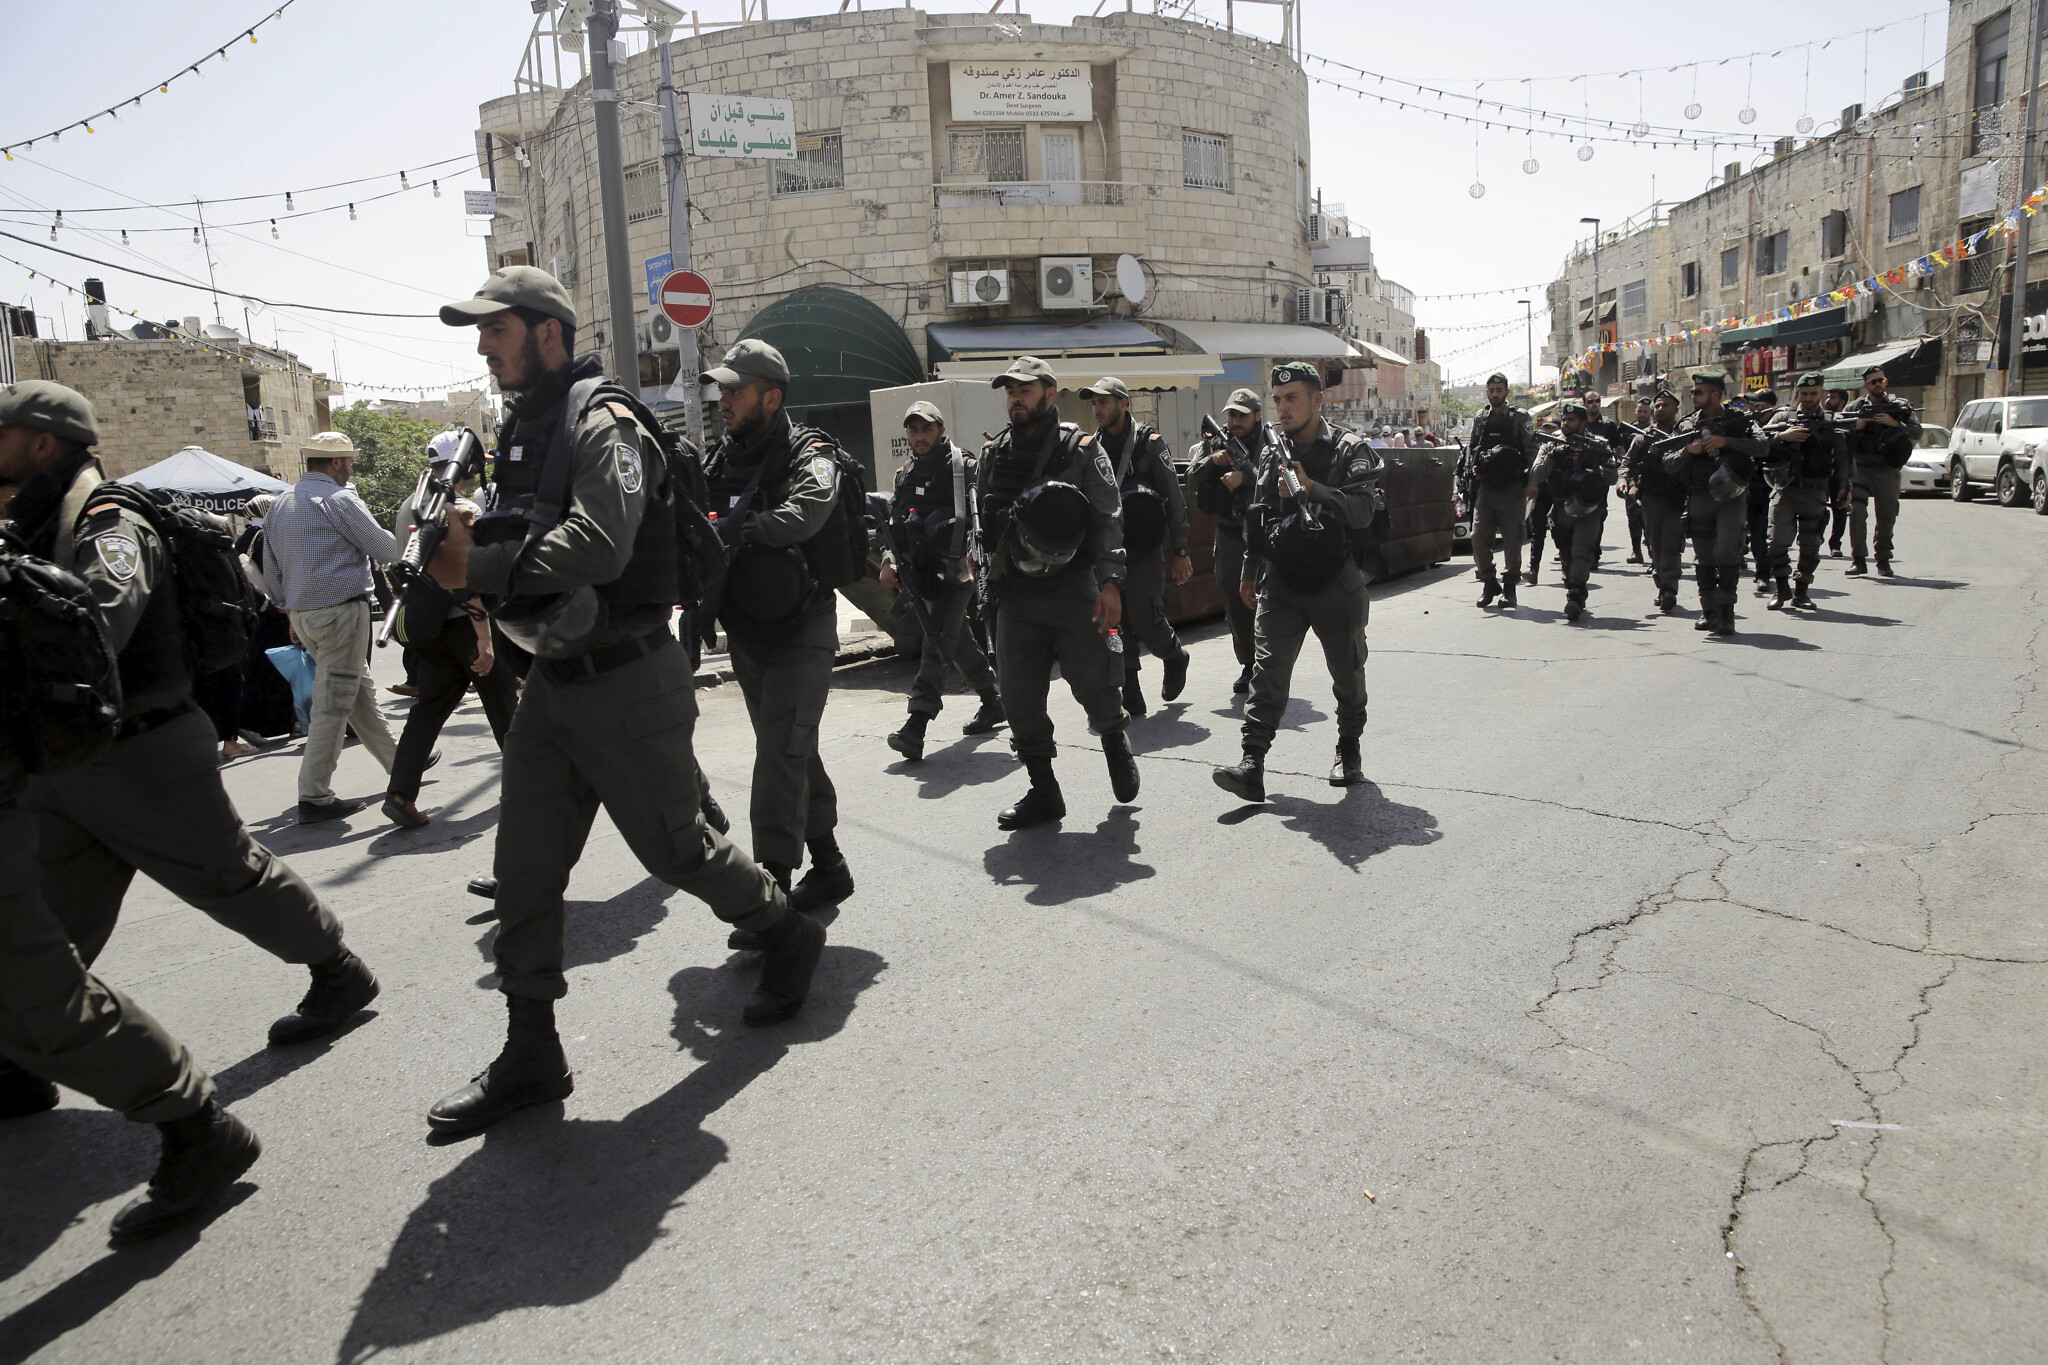 Five Border Police charged with assaulting, robbing Palestinians